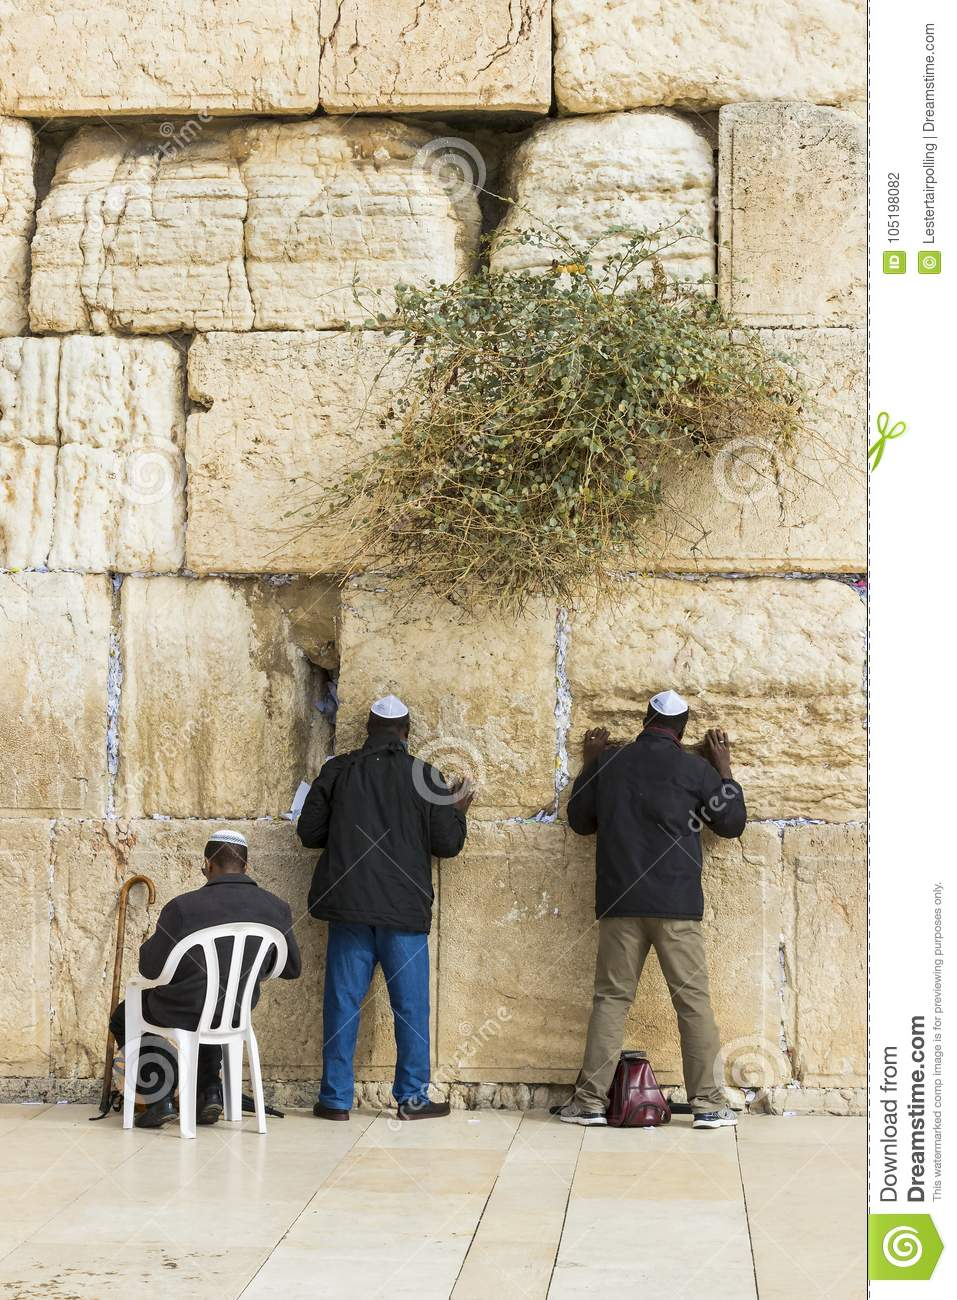 Pilgrims pray at the wall of the weeping of the holy place of the Jewish people and the center of worship of Christians around the